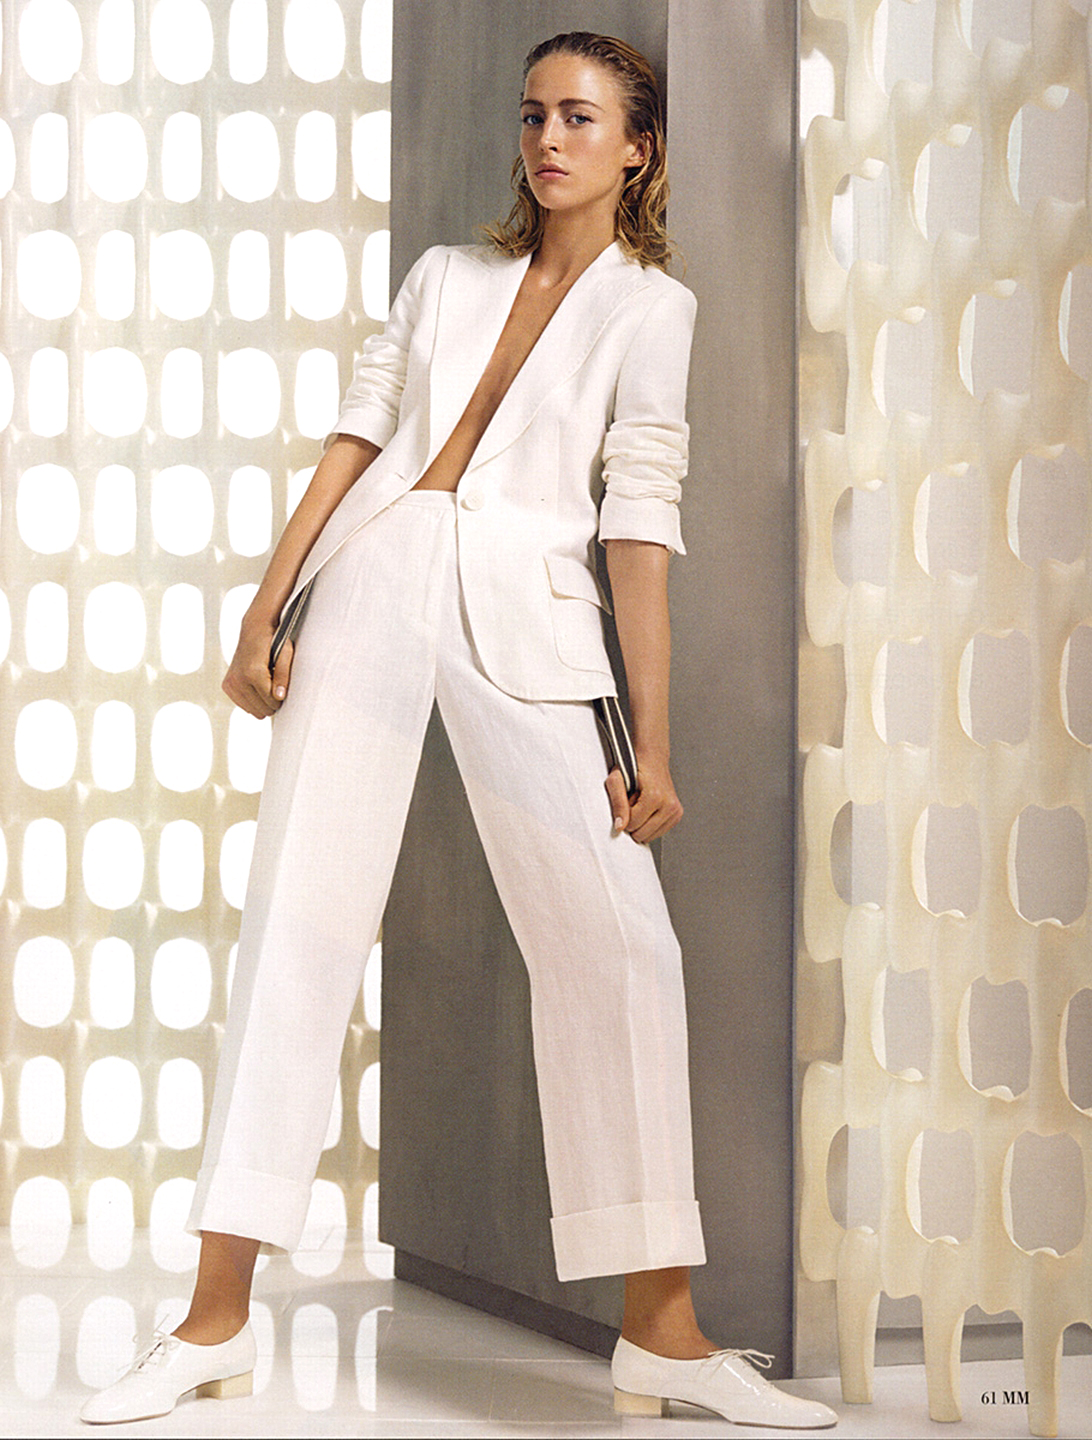 Max Mara Spring 2006 campaign  | how to wear white suit outfit ideas